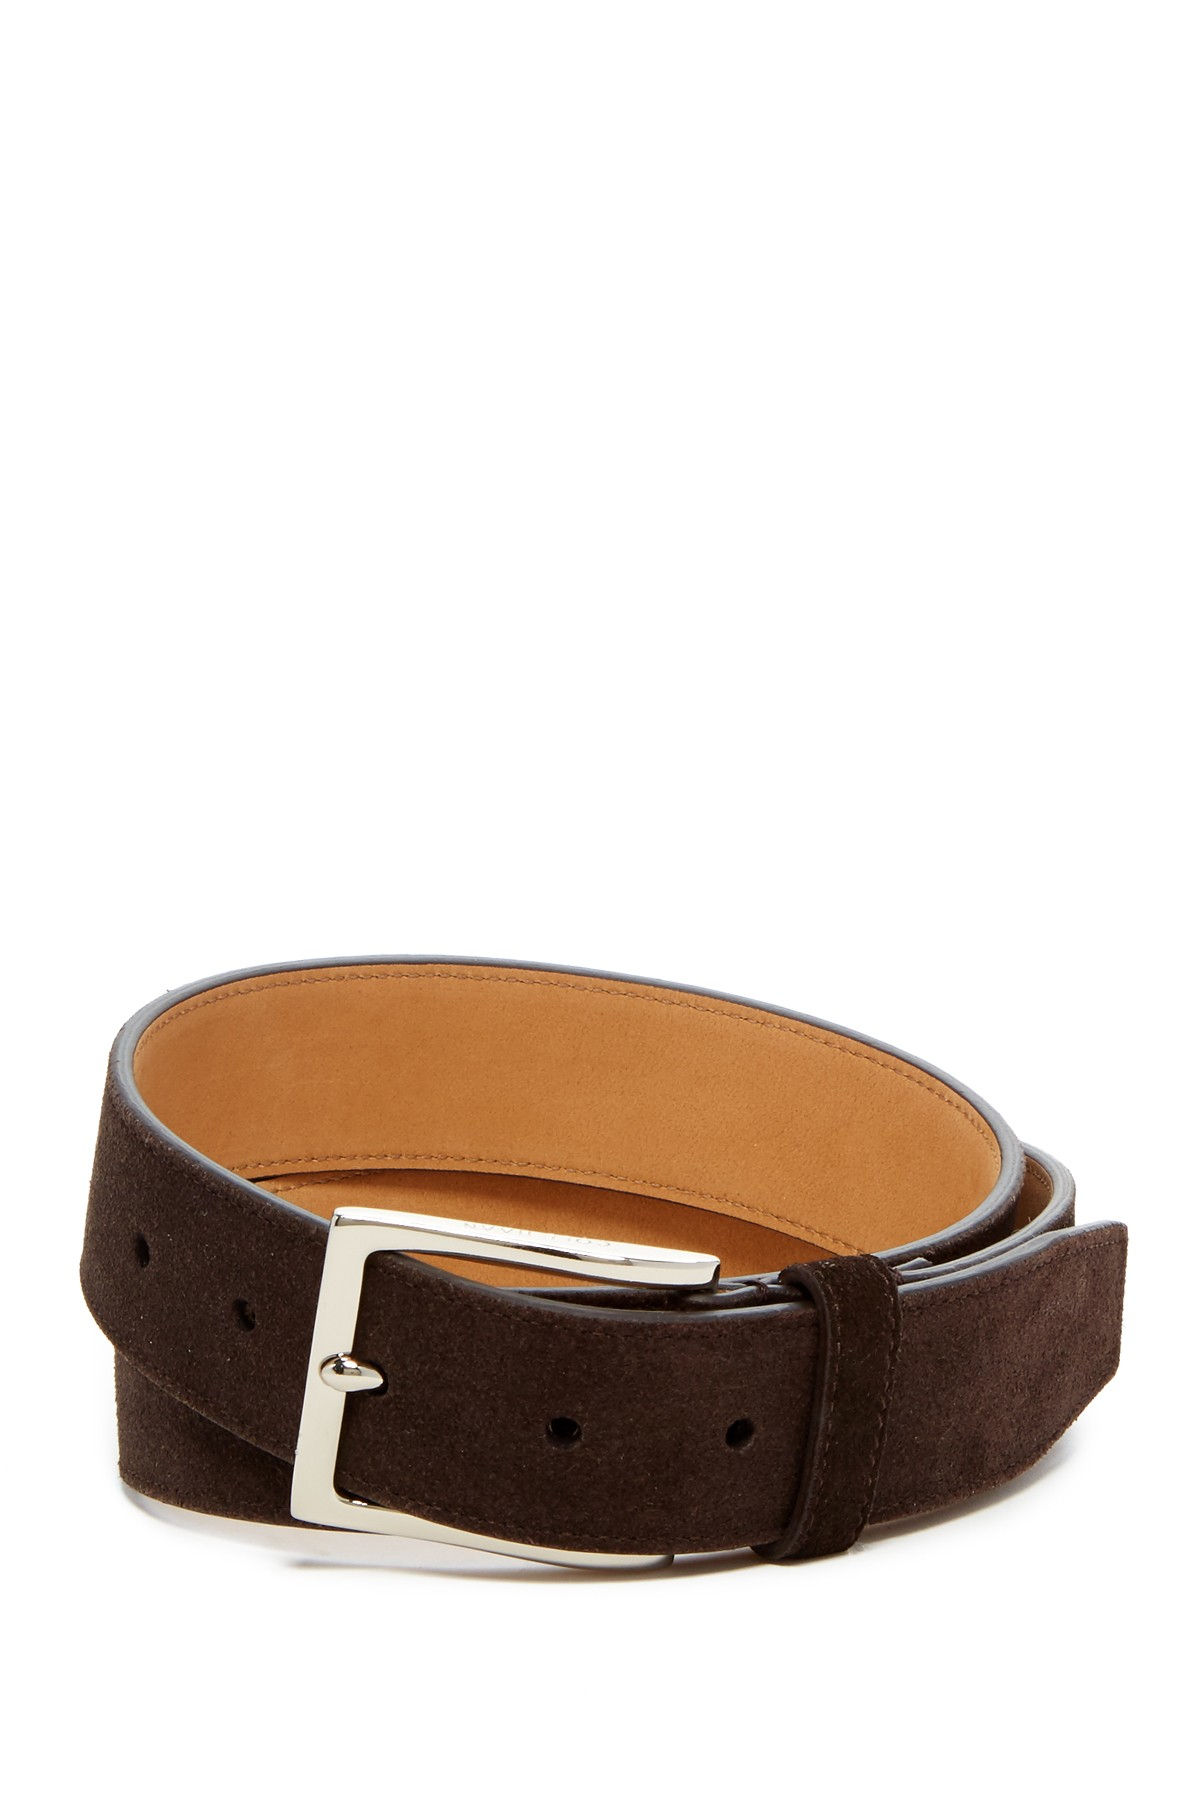 cole haan suede belt in brown for chocolate save